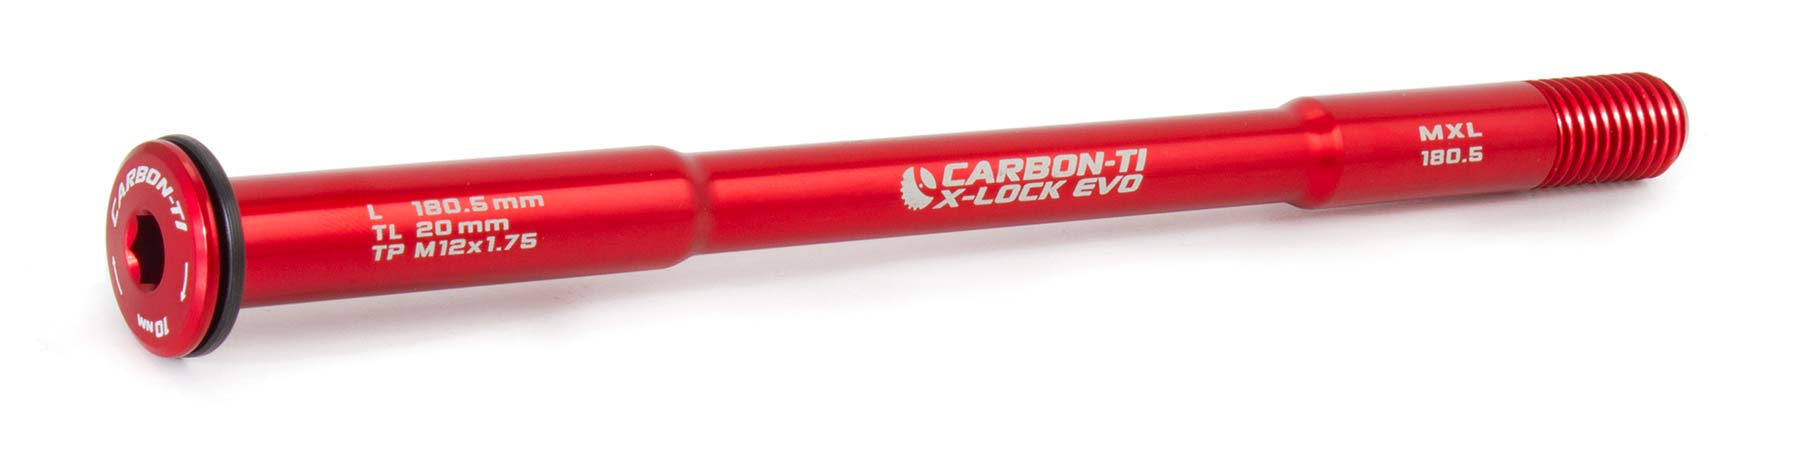 Carbon-Ti X-Lock Evo thru axles, lightweight 7075 alloy bolt-on replacement thru-axles, tapered